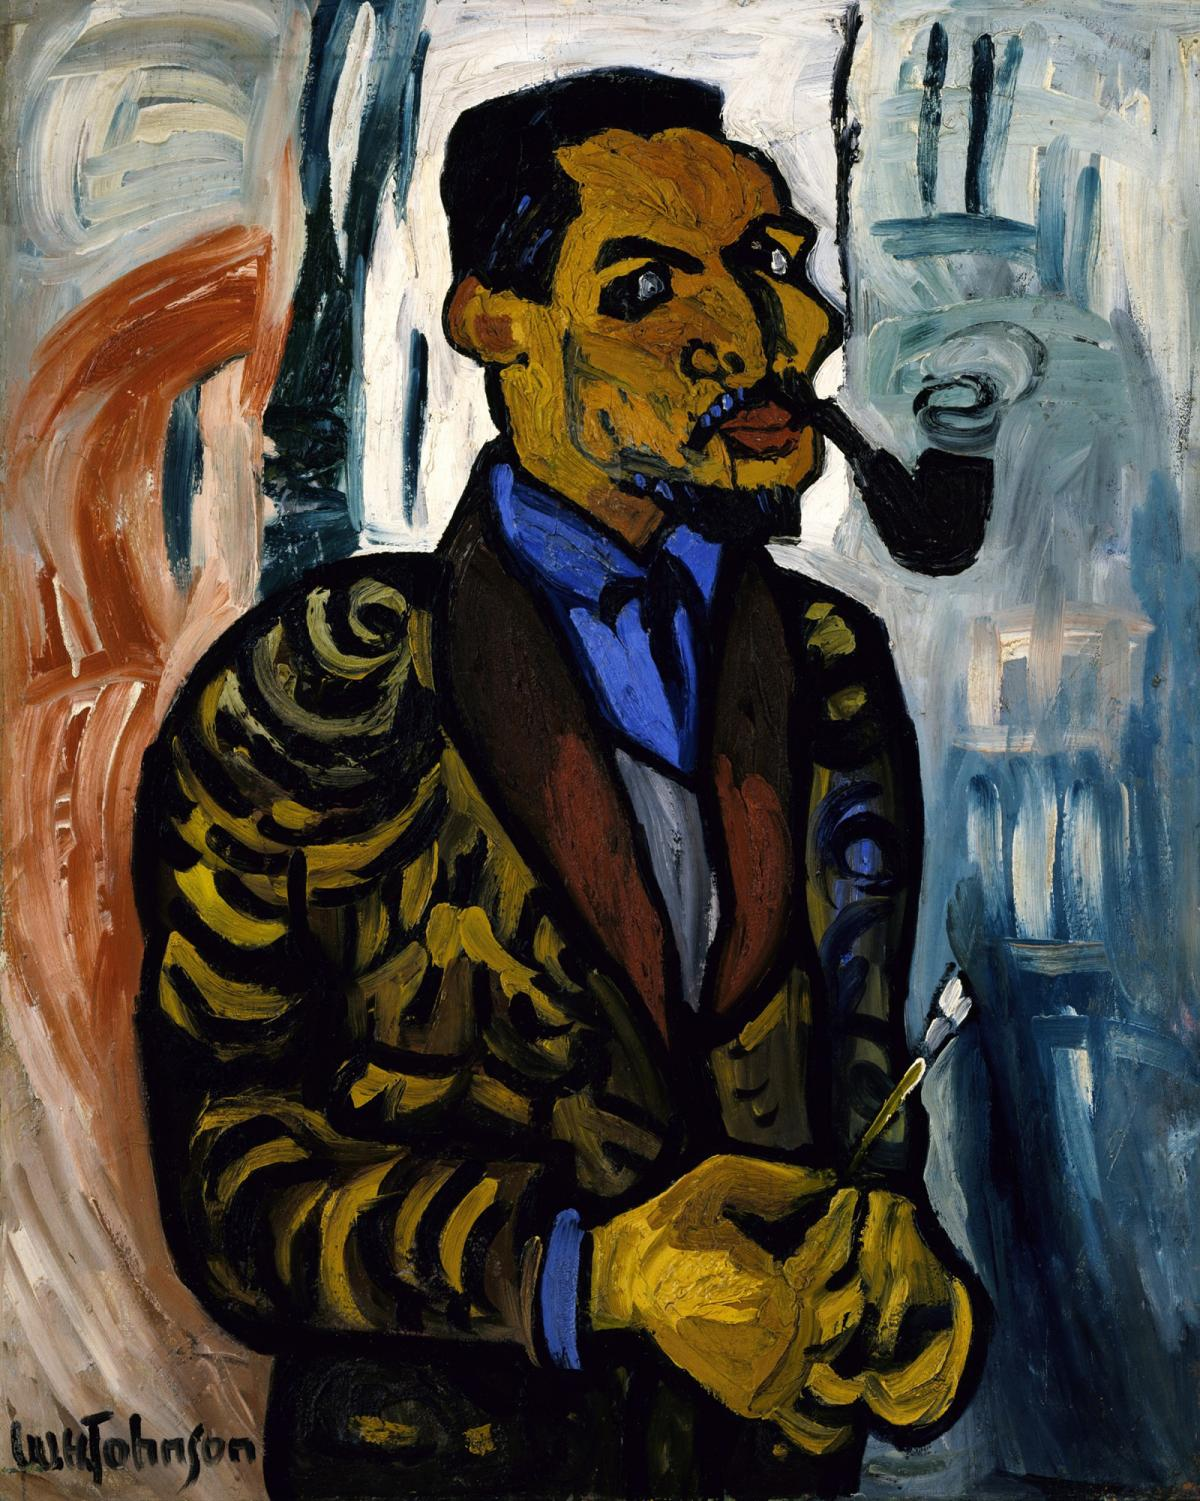 Self-portrait of artist William H Johnson with pipe in mouth and brush in hand.